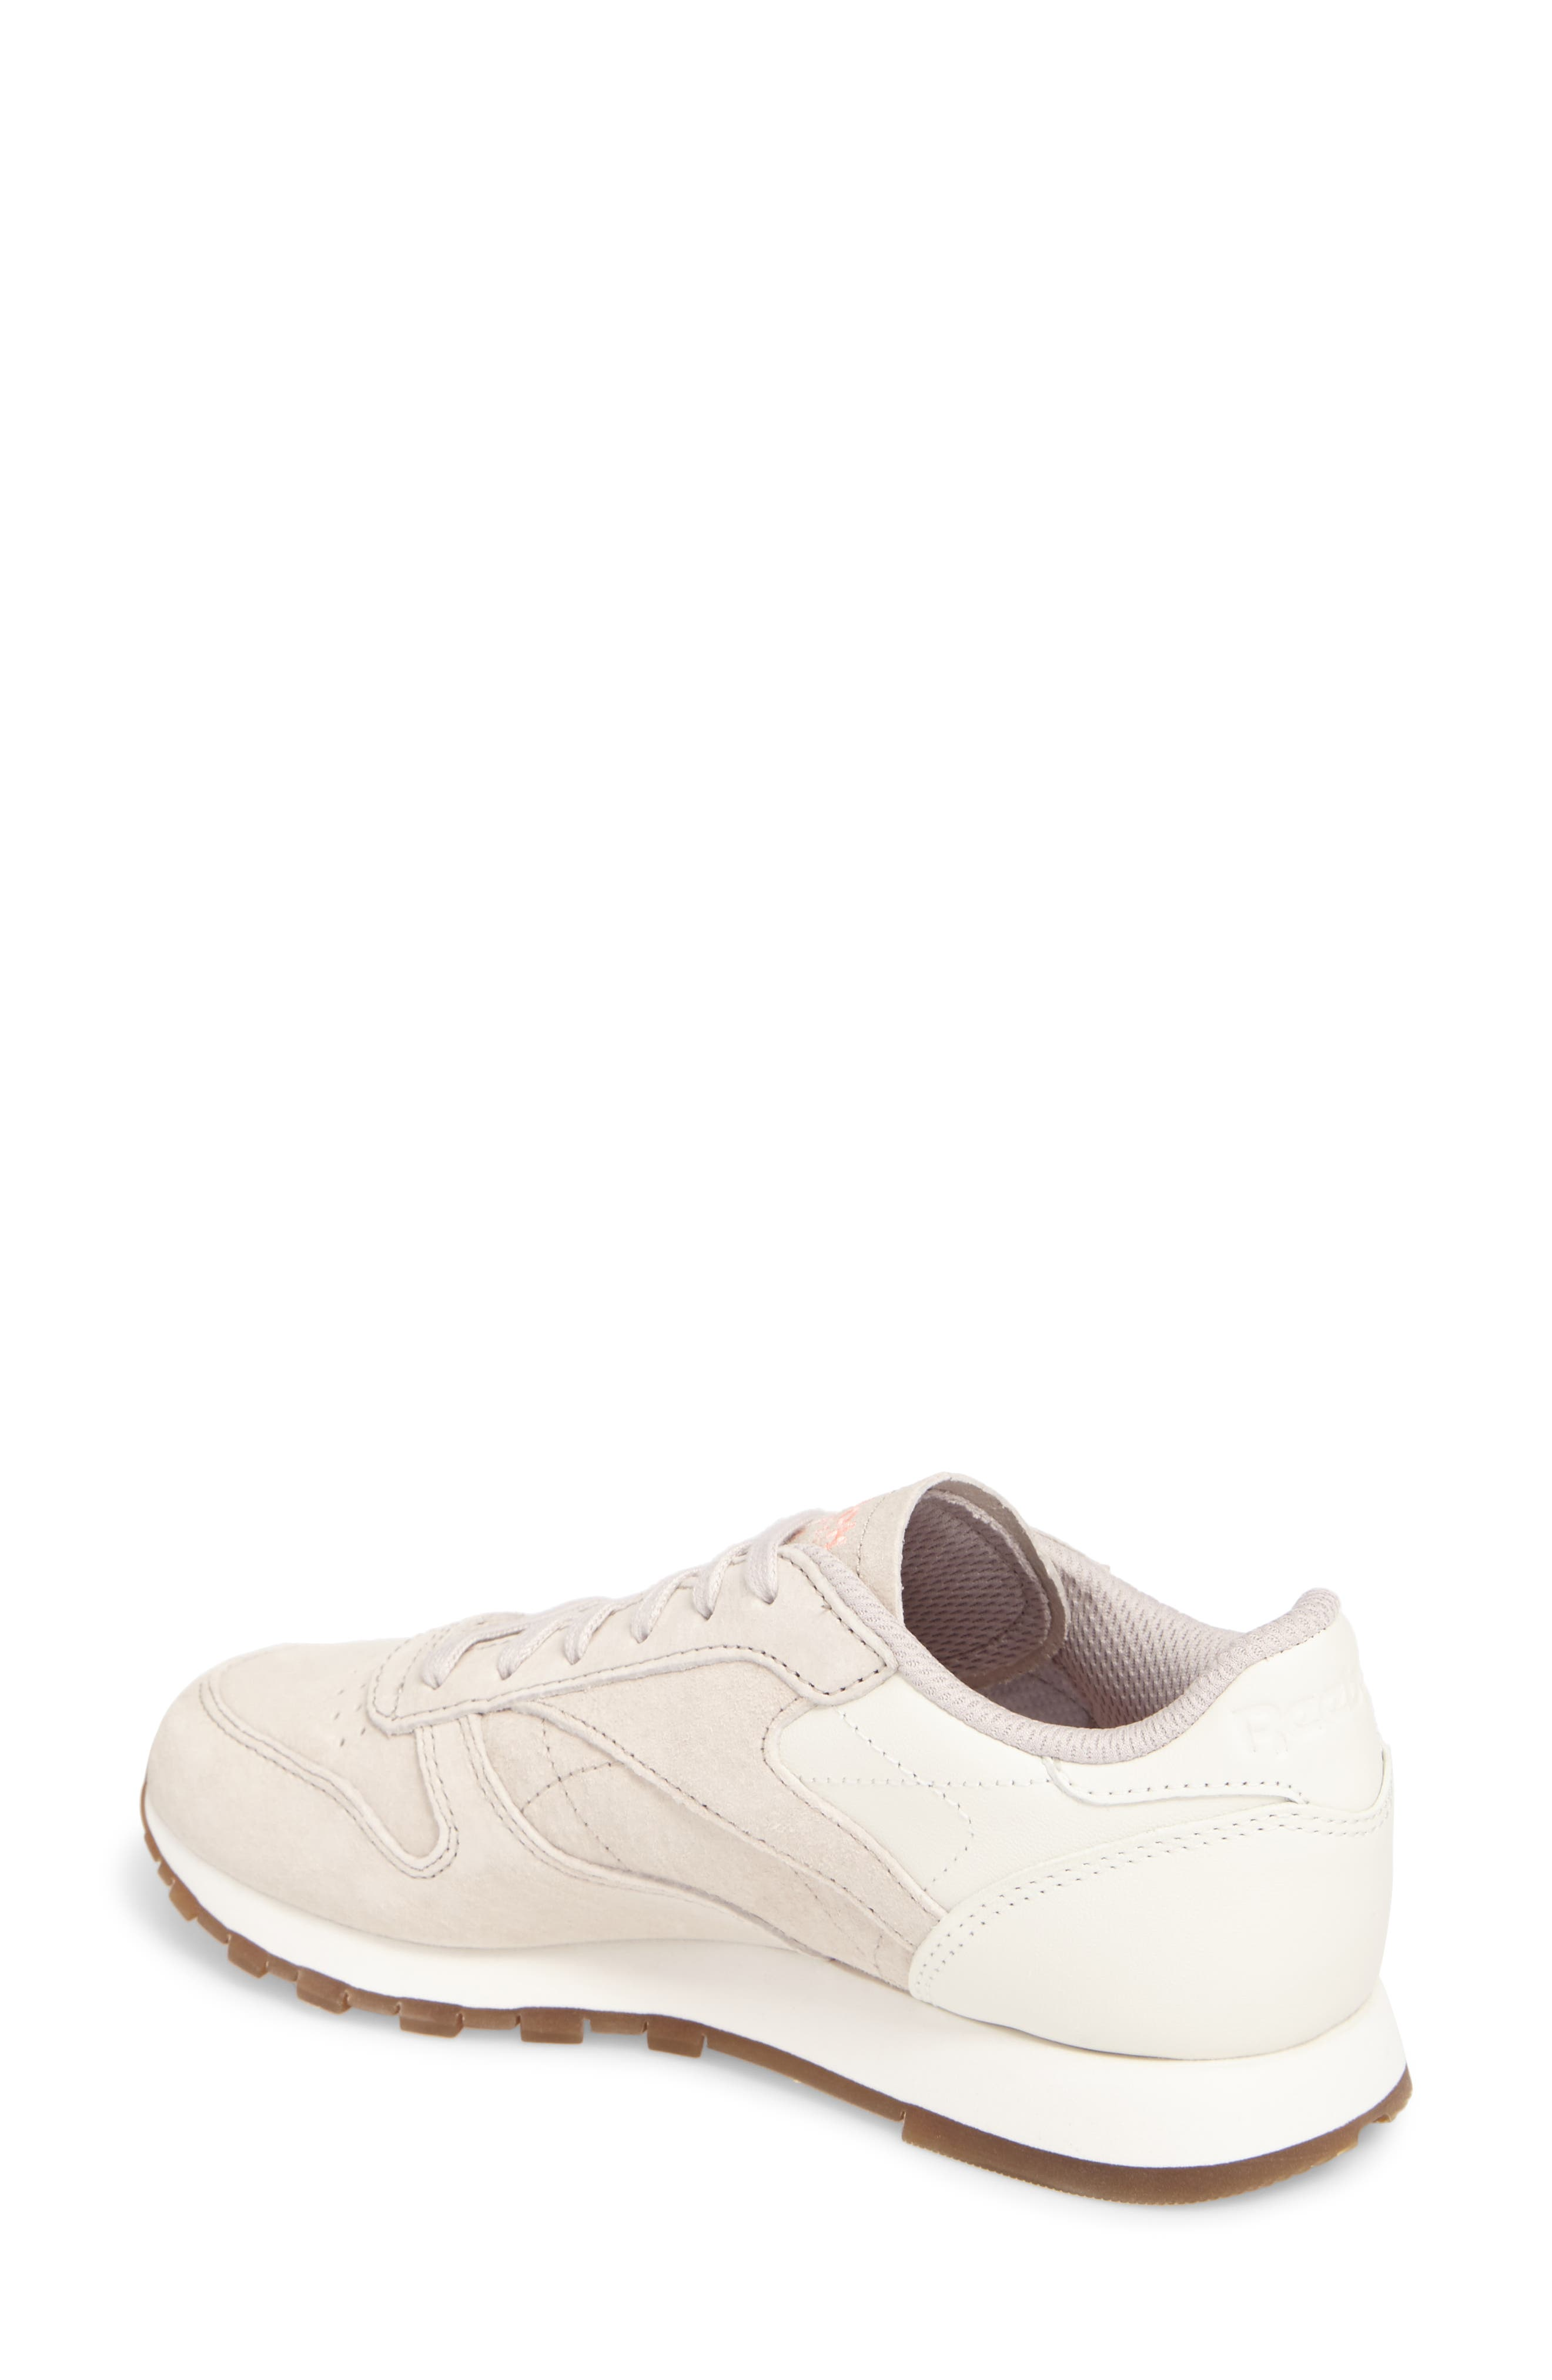 Classic Leather Sneaker,                             Alternate thumbnail 9, color,